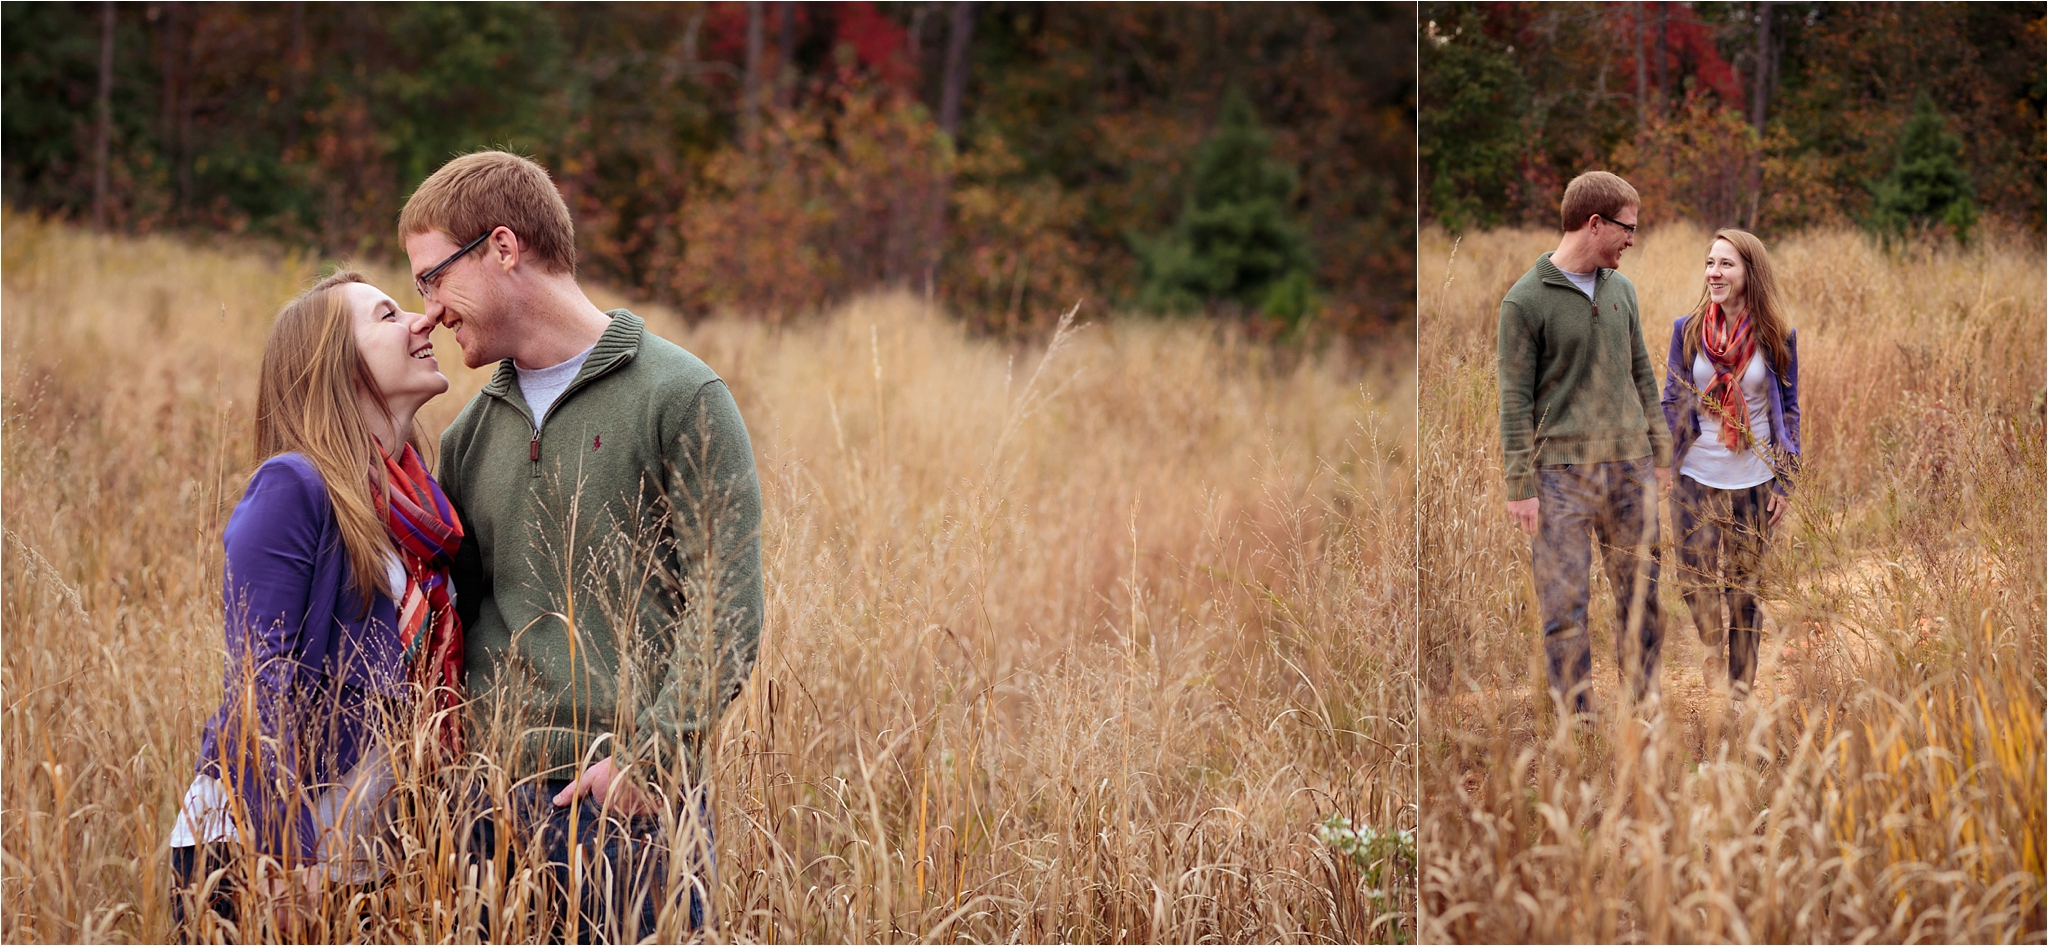 greenville-engagement-session-fall-colors-4_blog.jpg